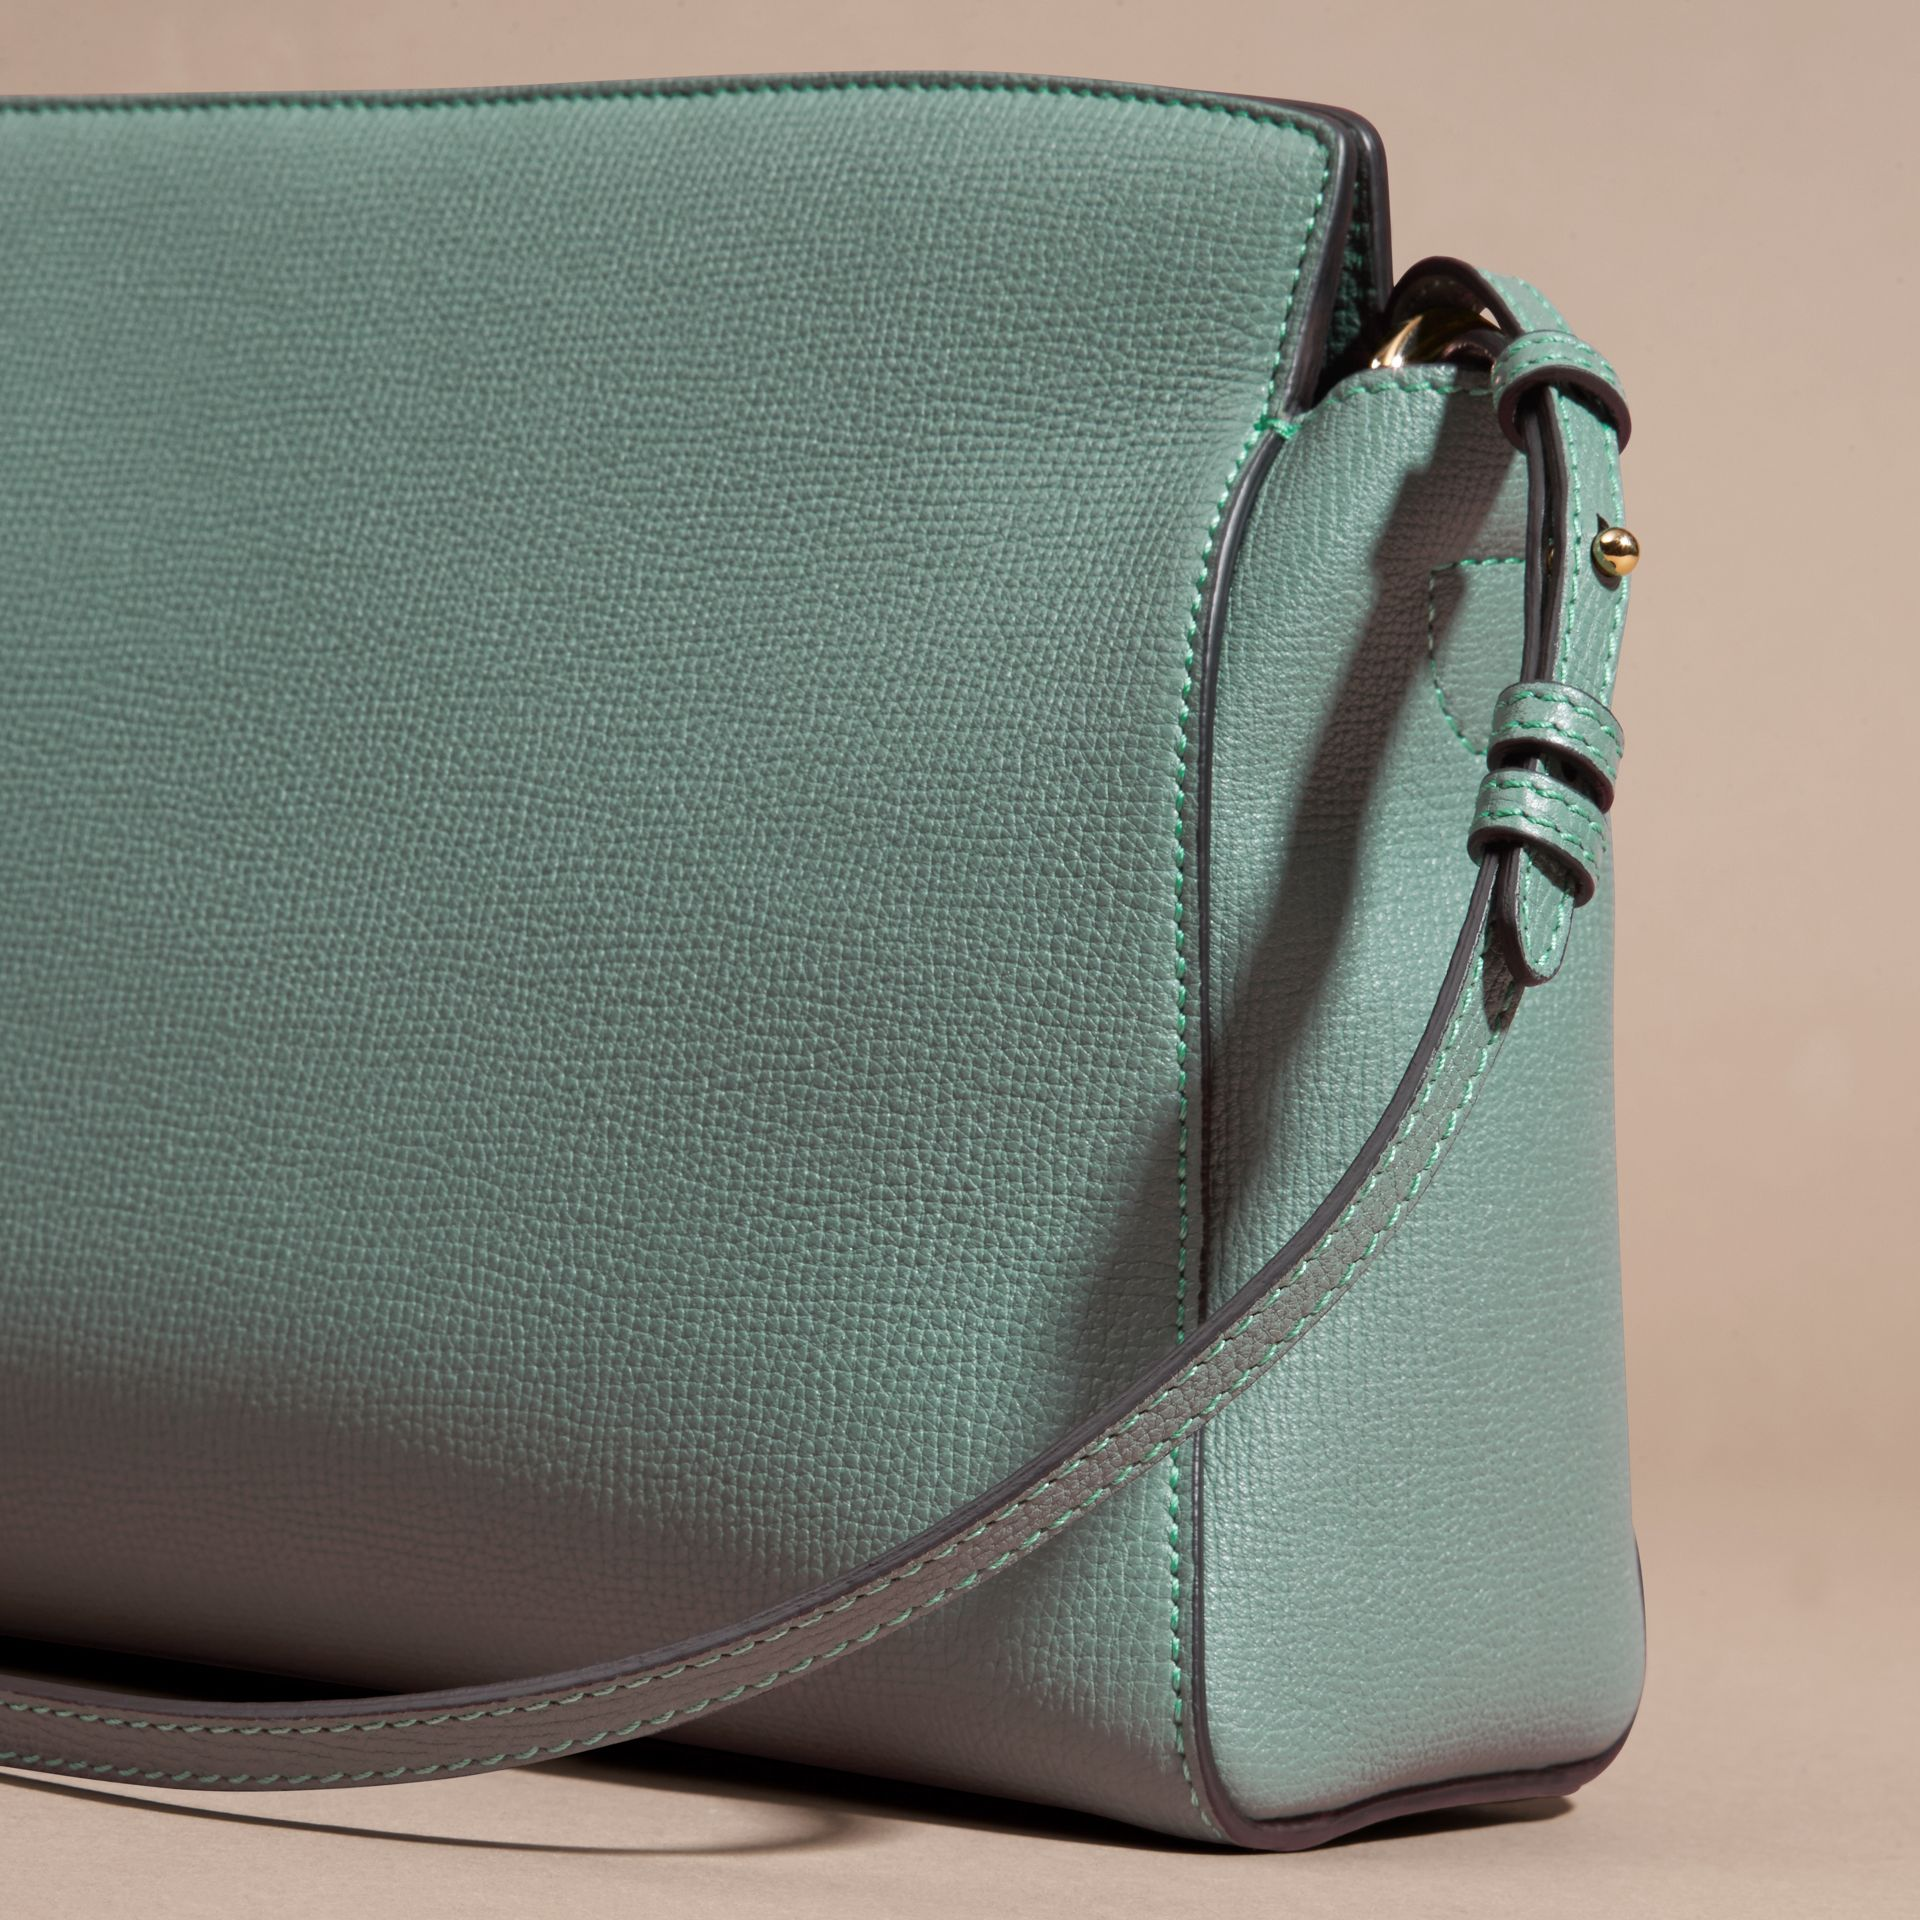 Smokey green The Saddle Clutch in Grainy Bonded Leather Smokey Green - gallery image 4